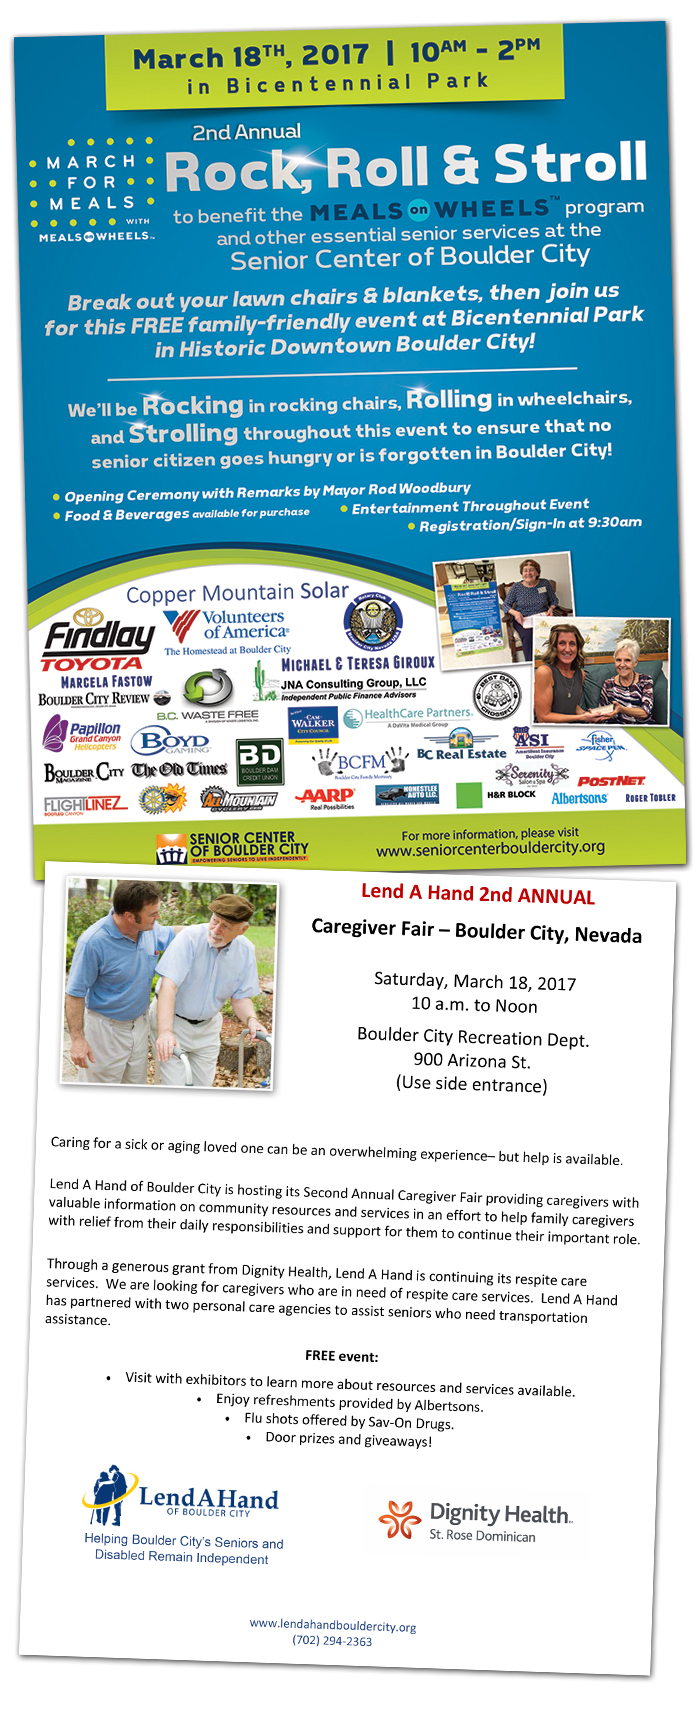 Rock Roll and Stroll and Caregiver Fair 2017 in Boulder City, NV